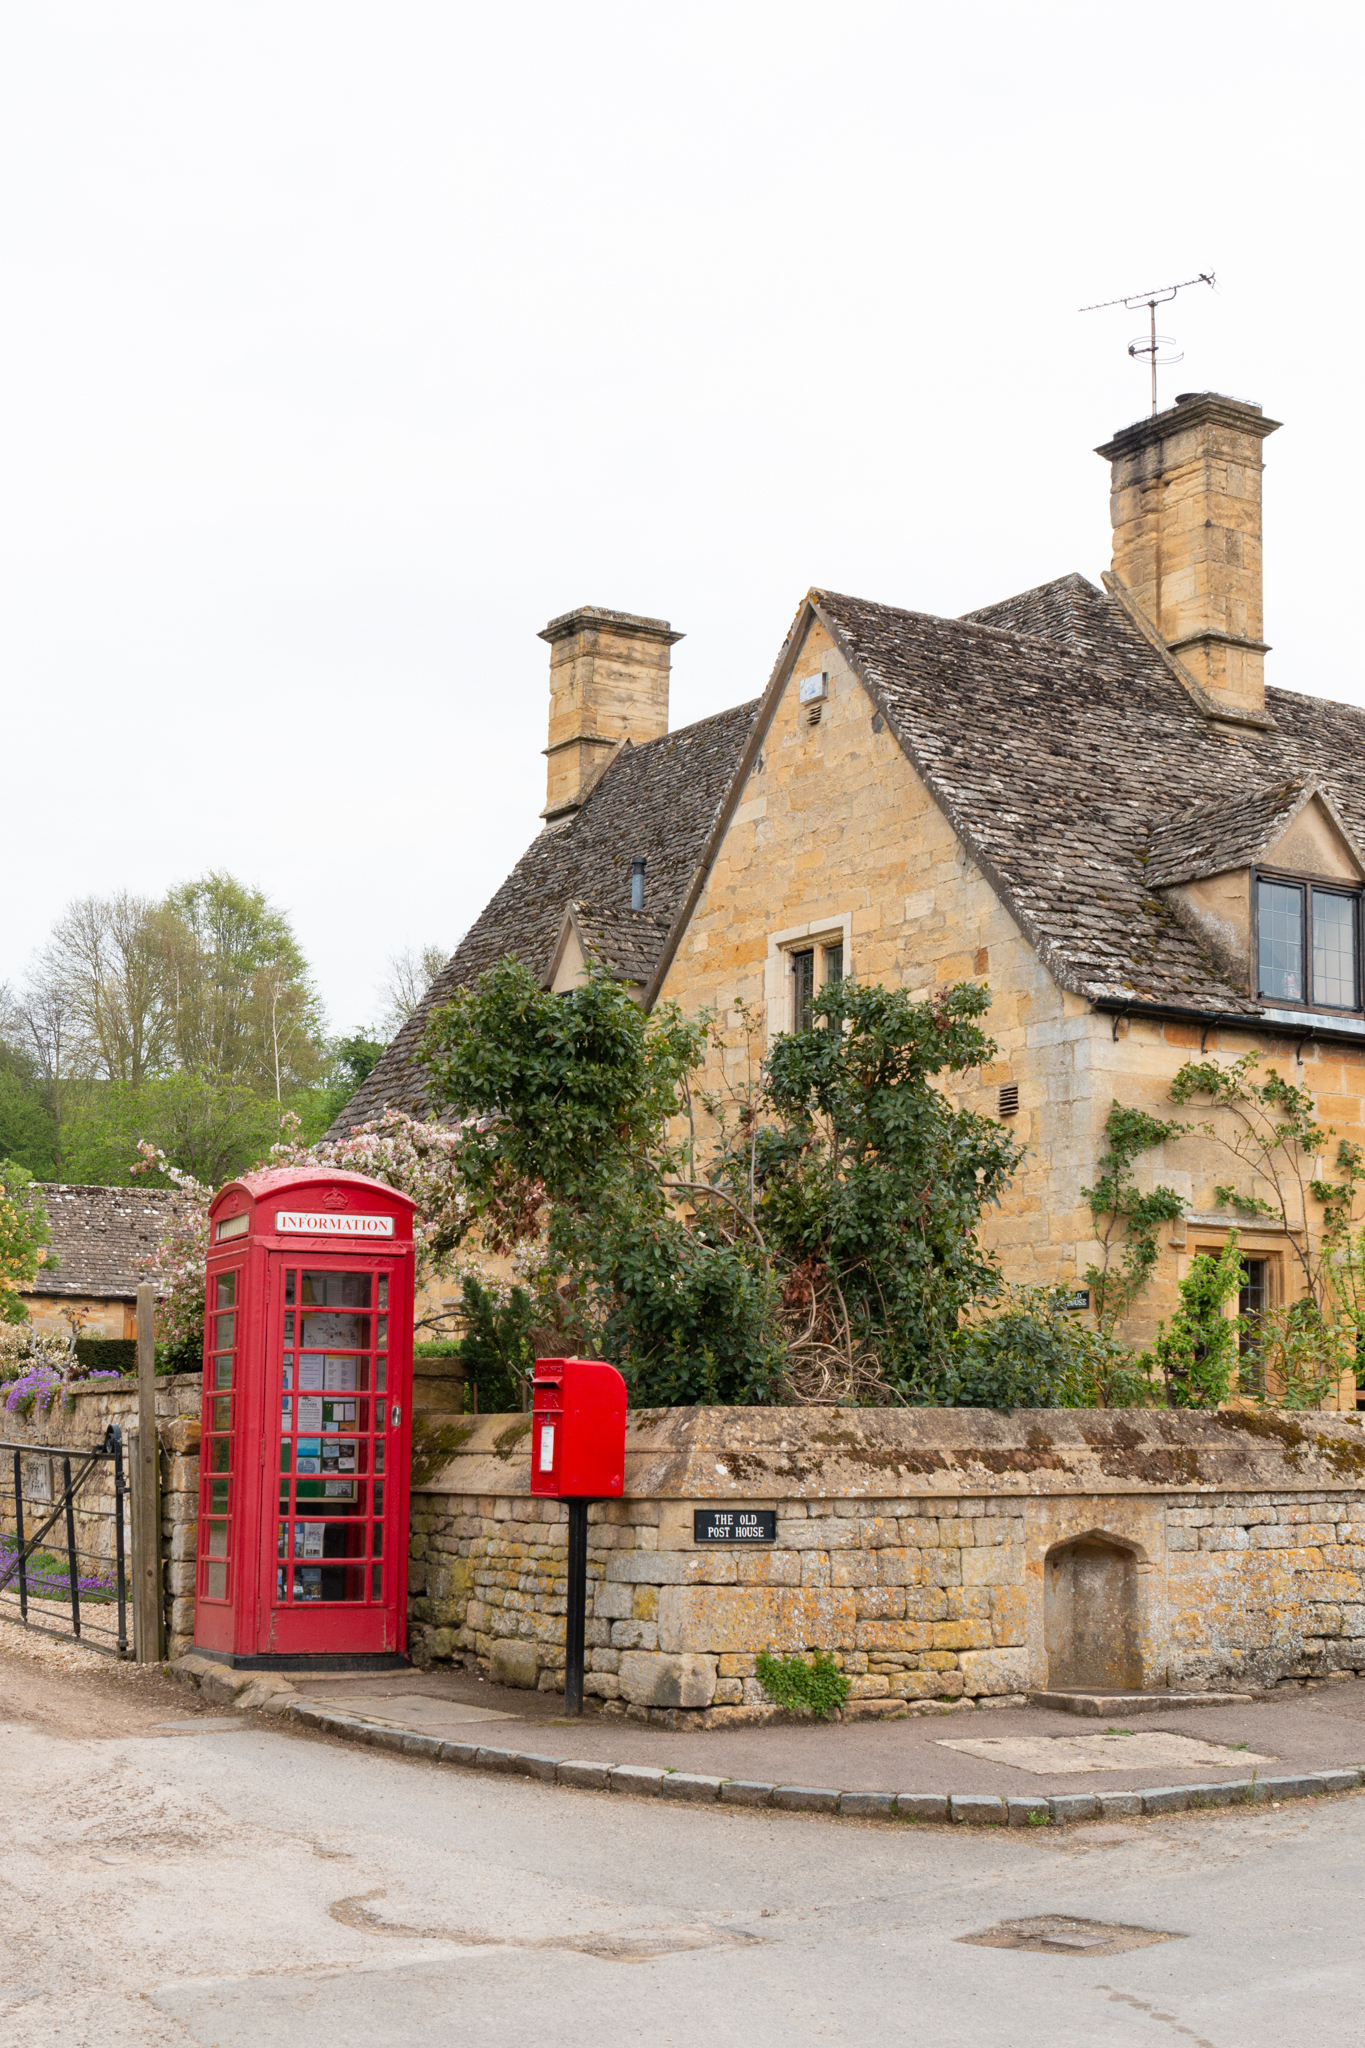 Stanton, England's Cotswolds | Ciao Fabello